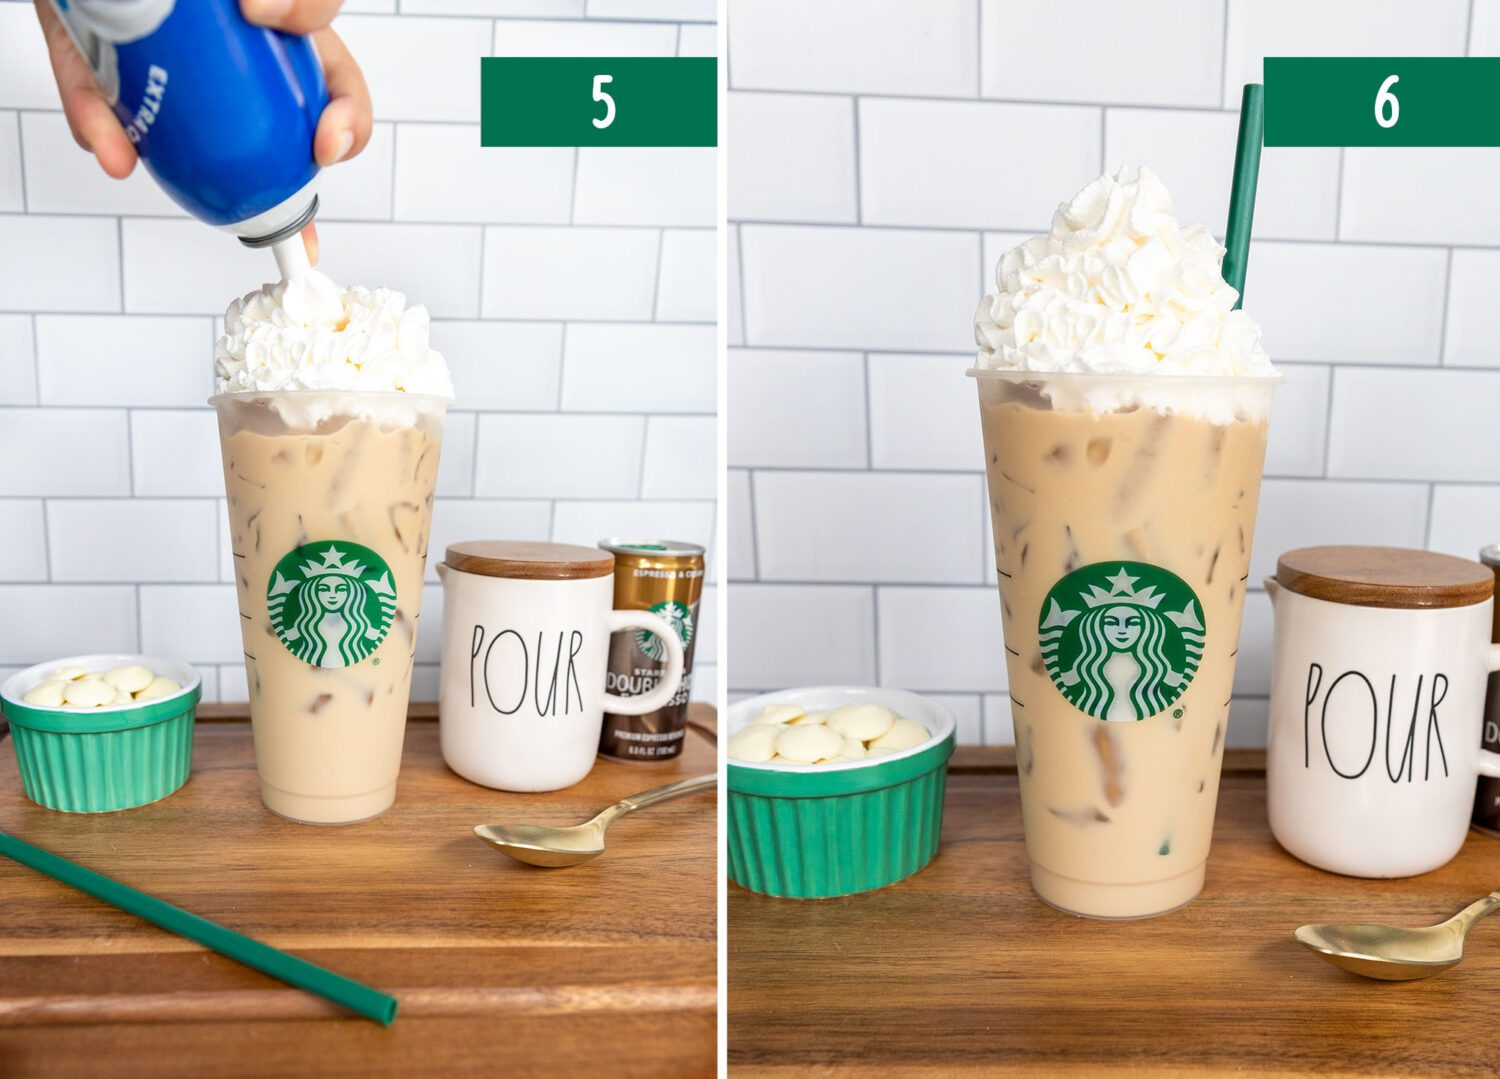 last two steps to make an iced white chocolate mocha